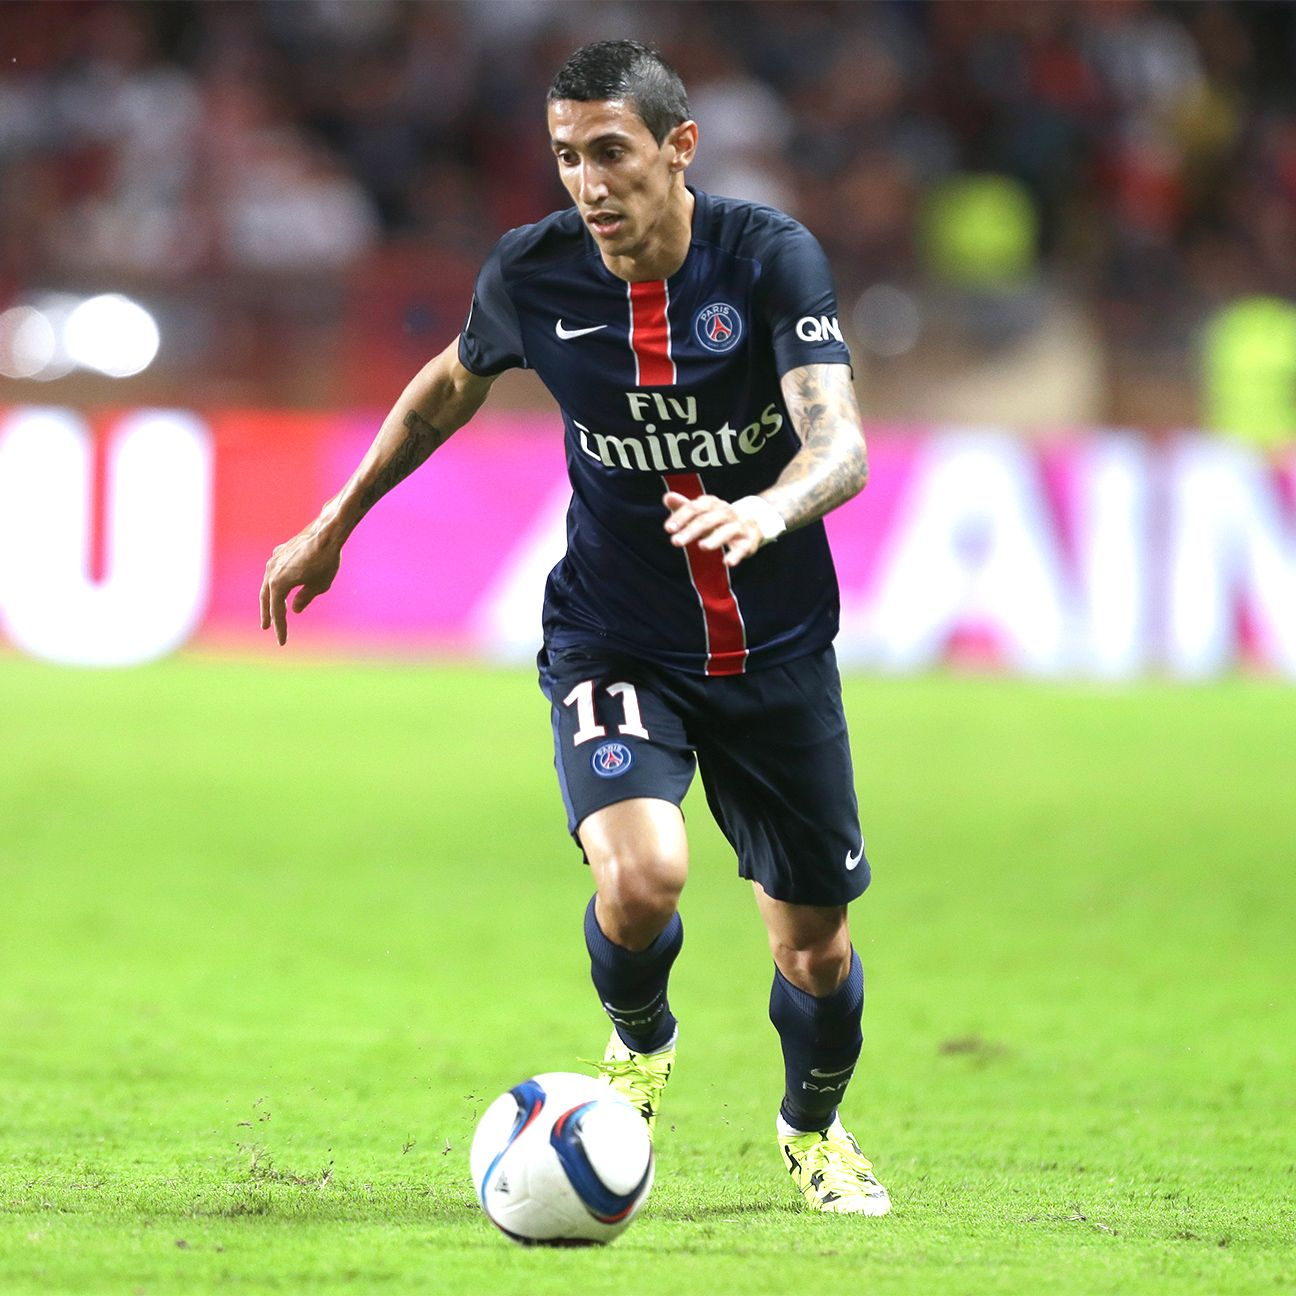 Angel Di Maria will get his first chance to impress the home fans when PSG host Bordeaux.